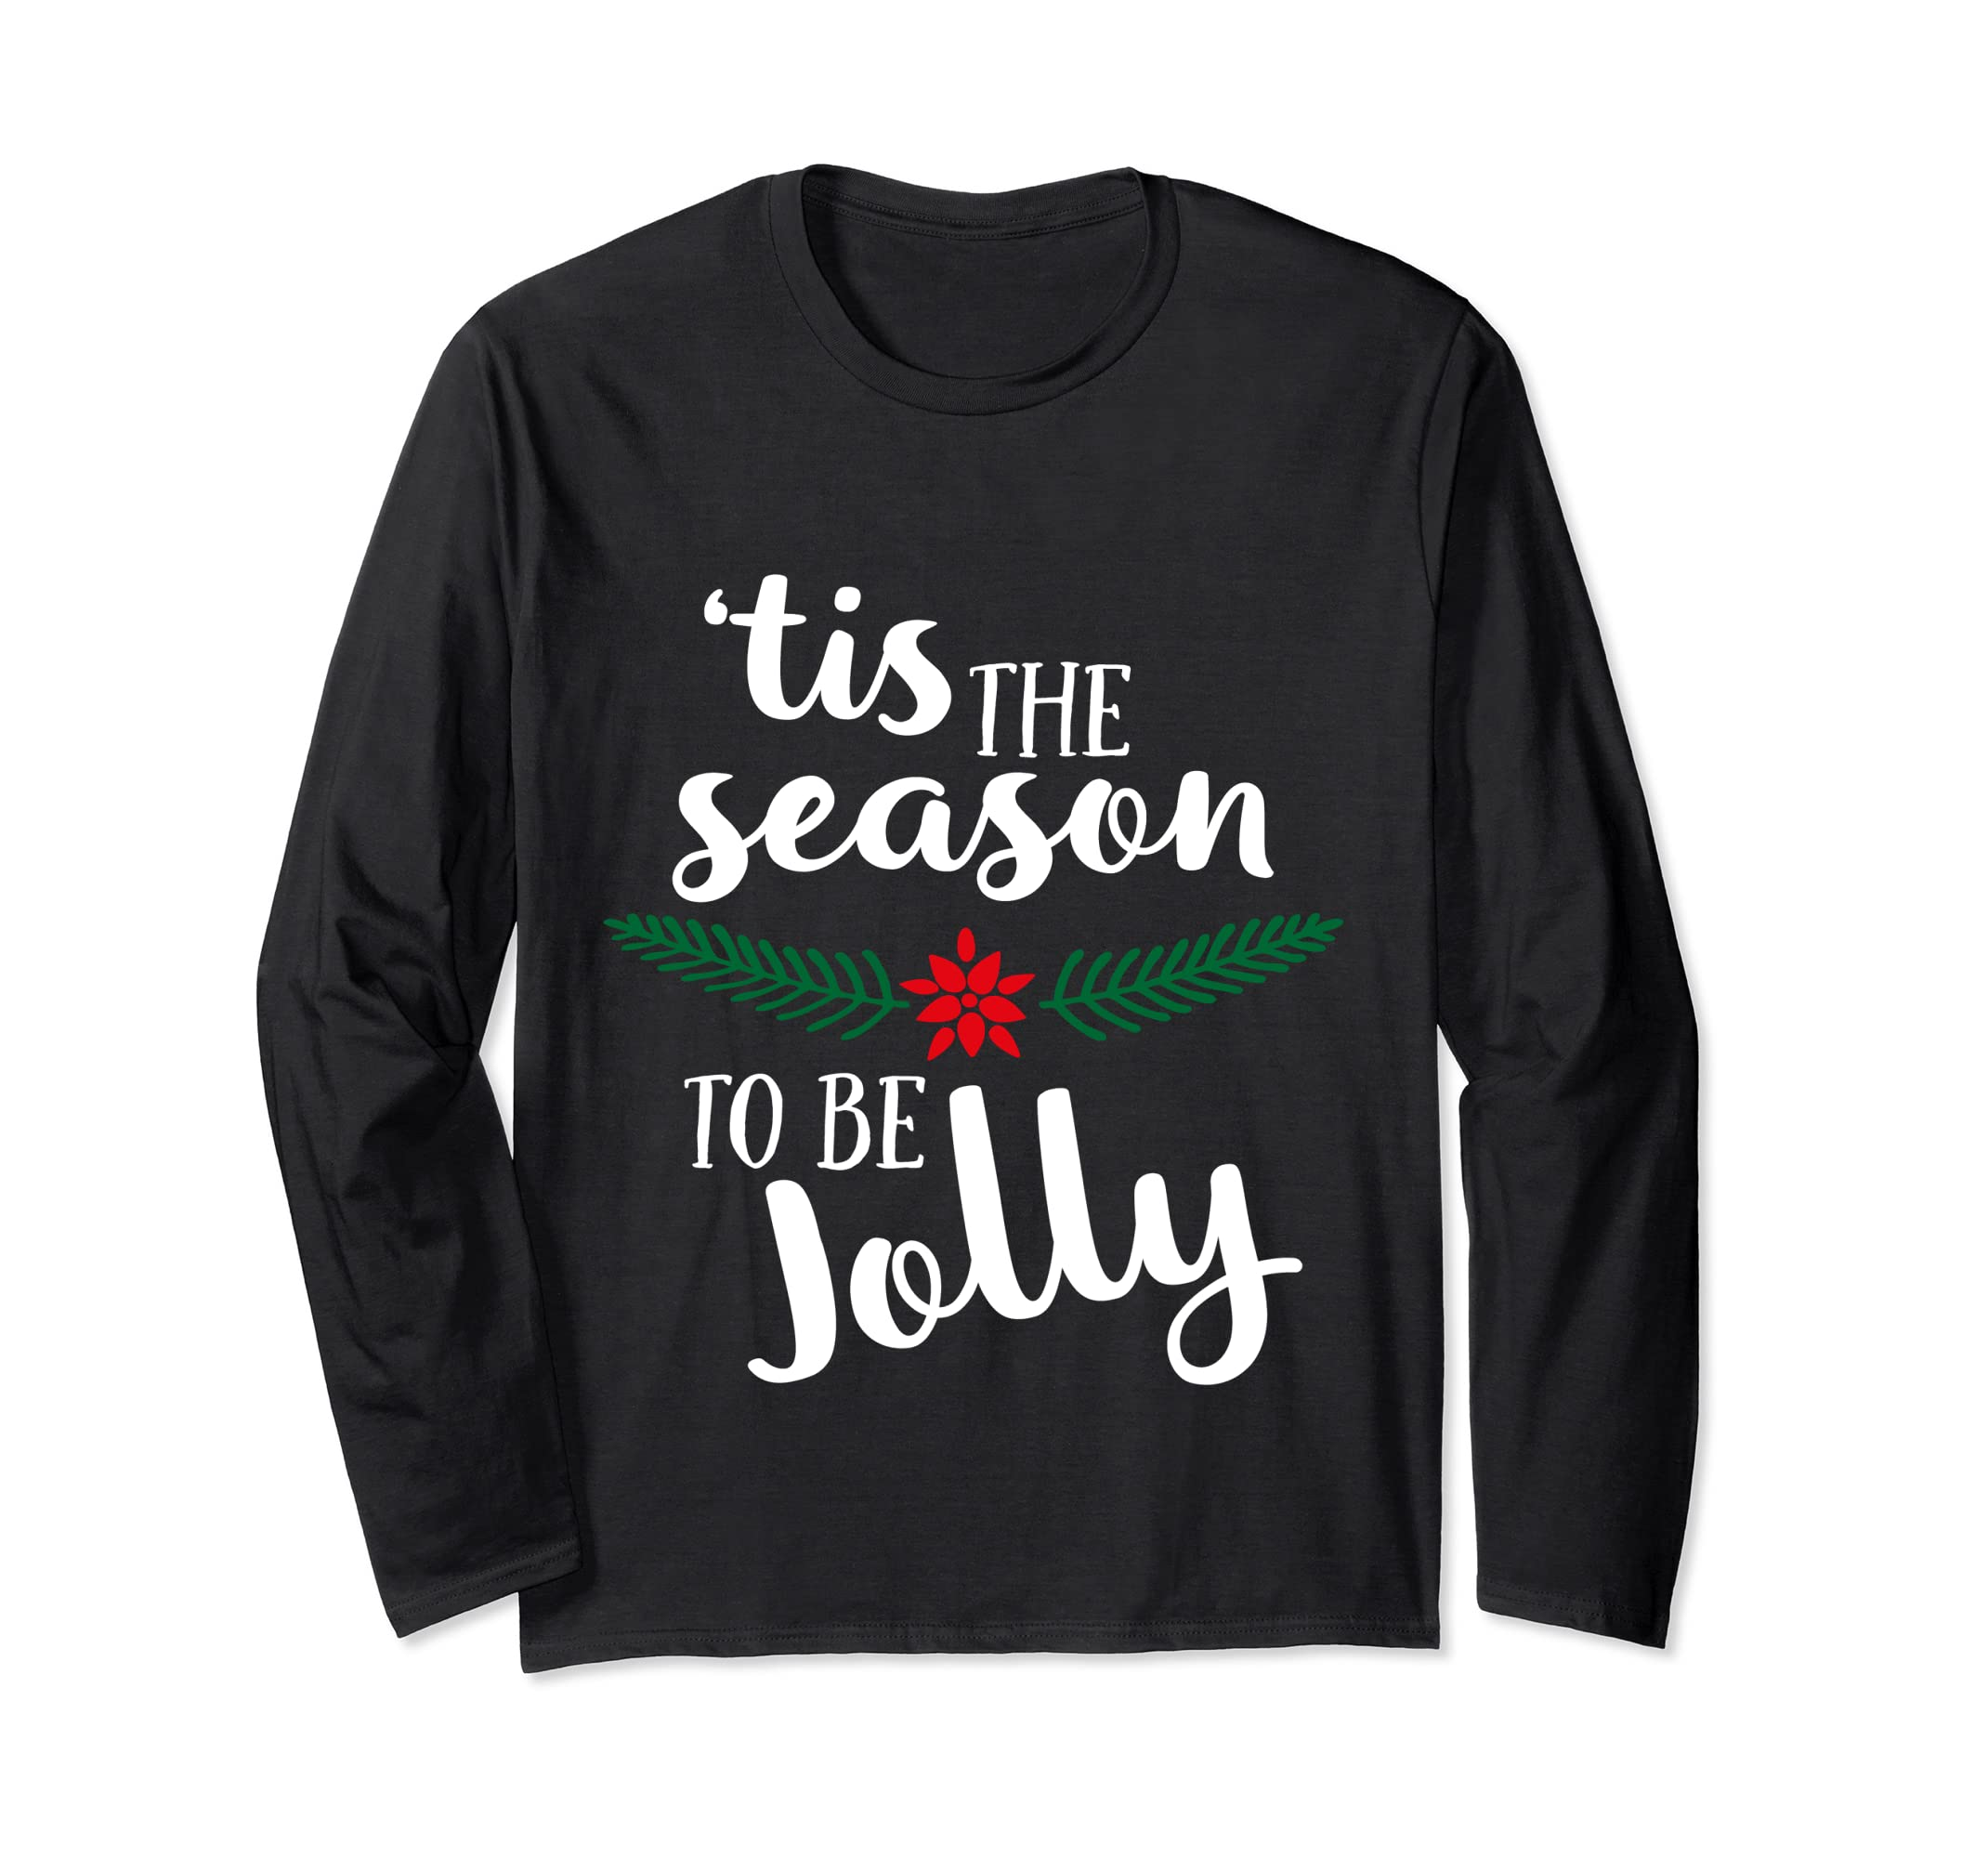 d1da5e10ff1 Amazon.com  Tis The Season To Be Jolly Long Sleeve T-shirt For Women   Clothing